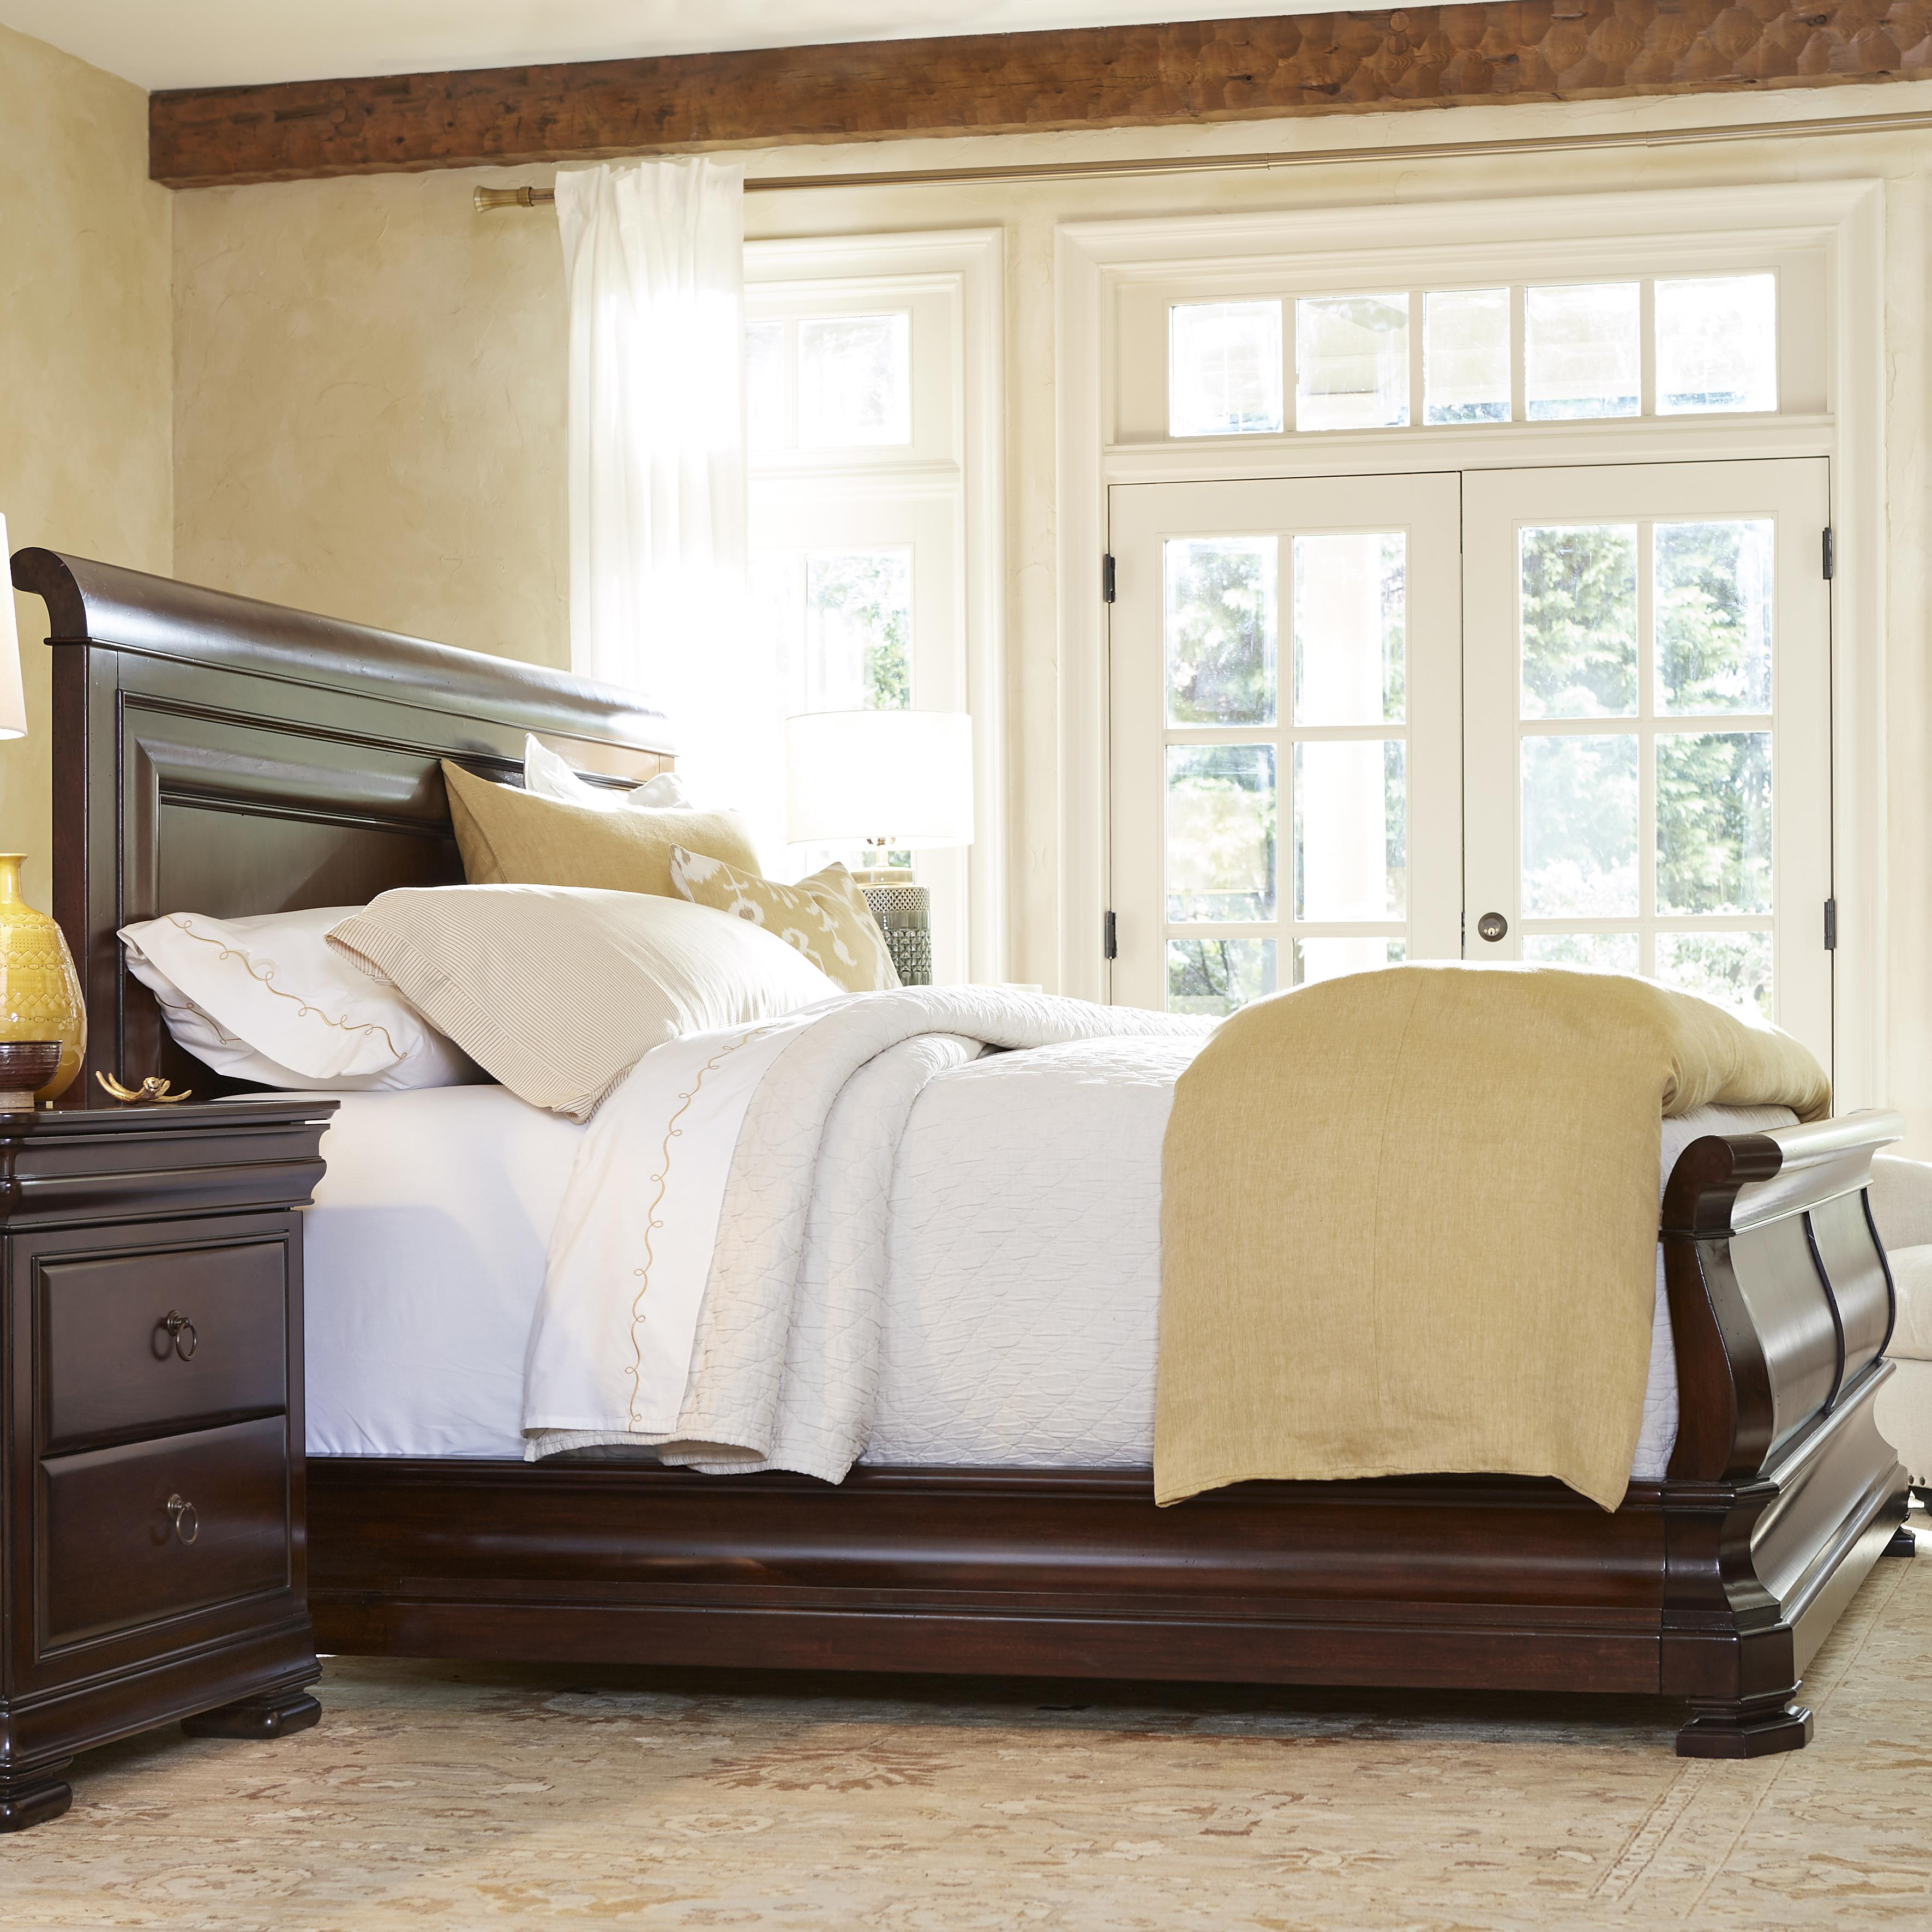 Bed Headboard Reprise King Sleigh Bed With Paneled Headboard By Universal At Zak S Home